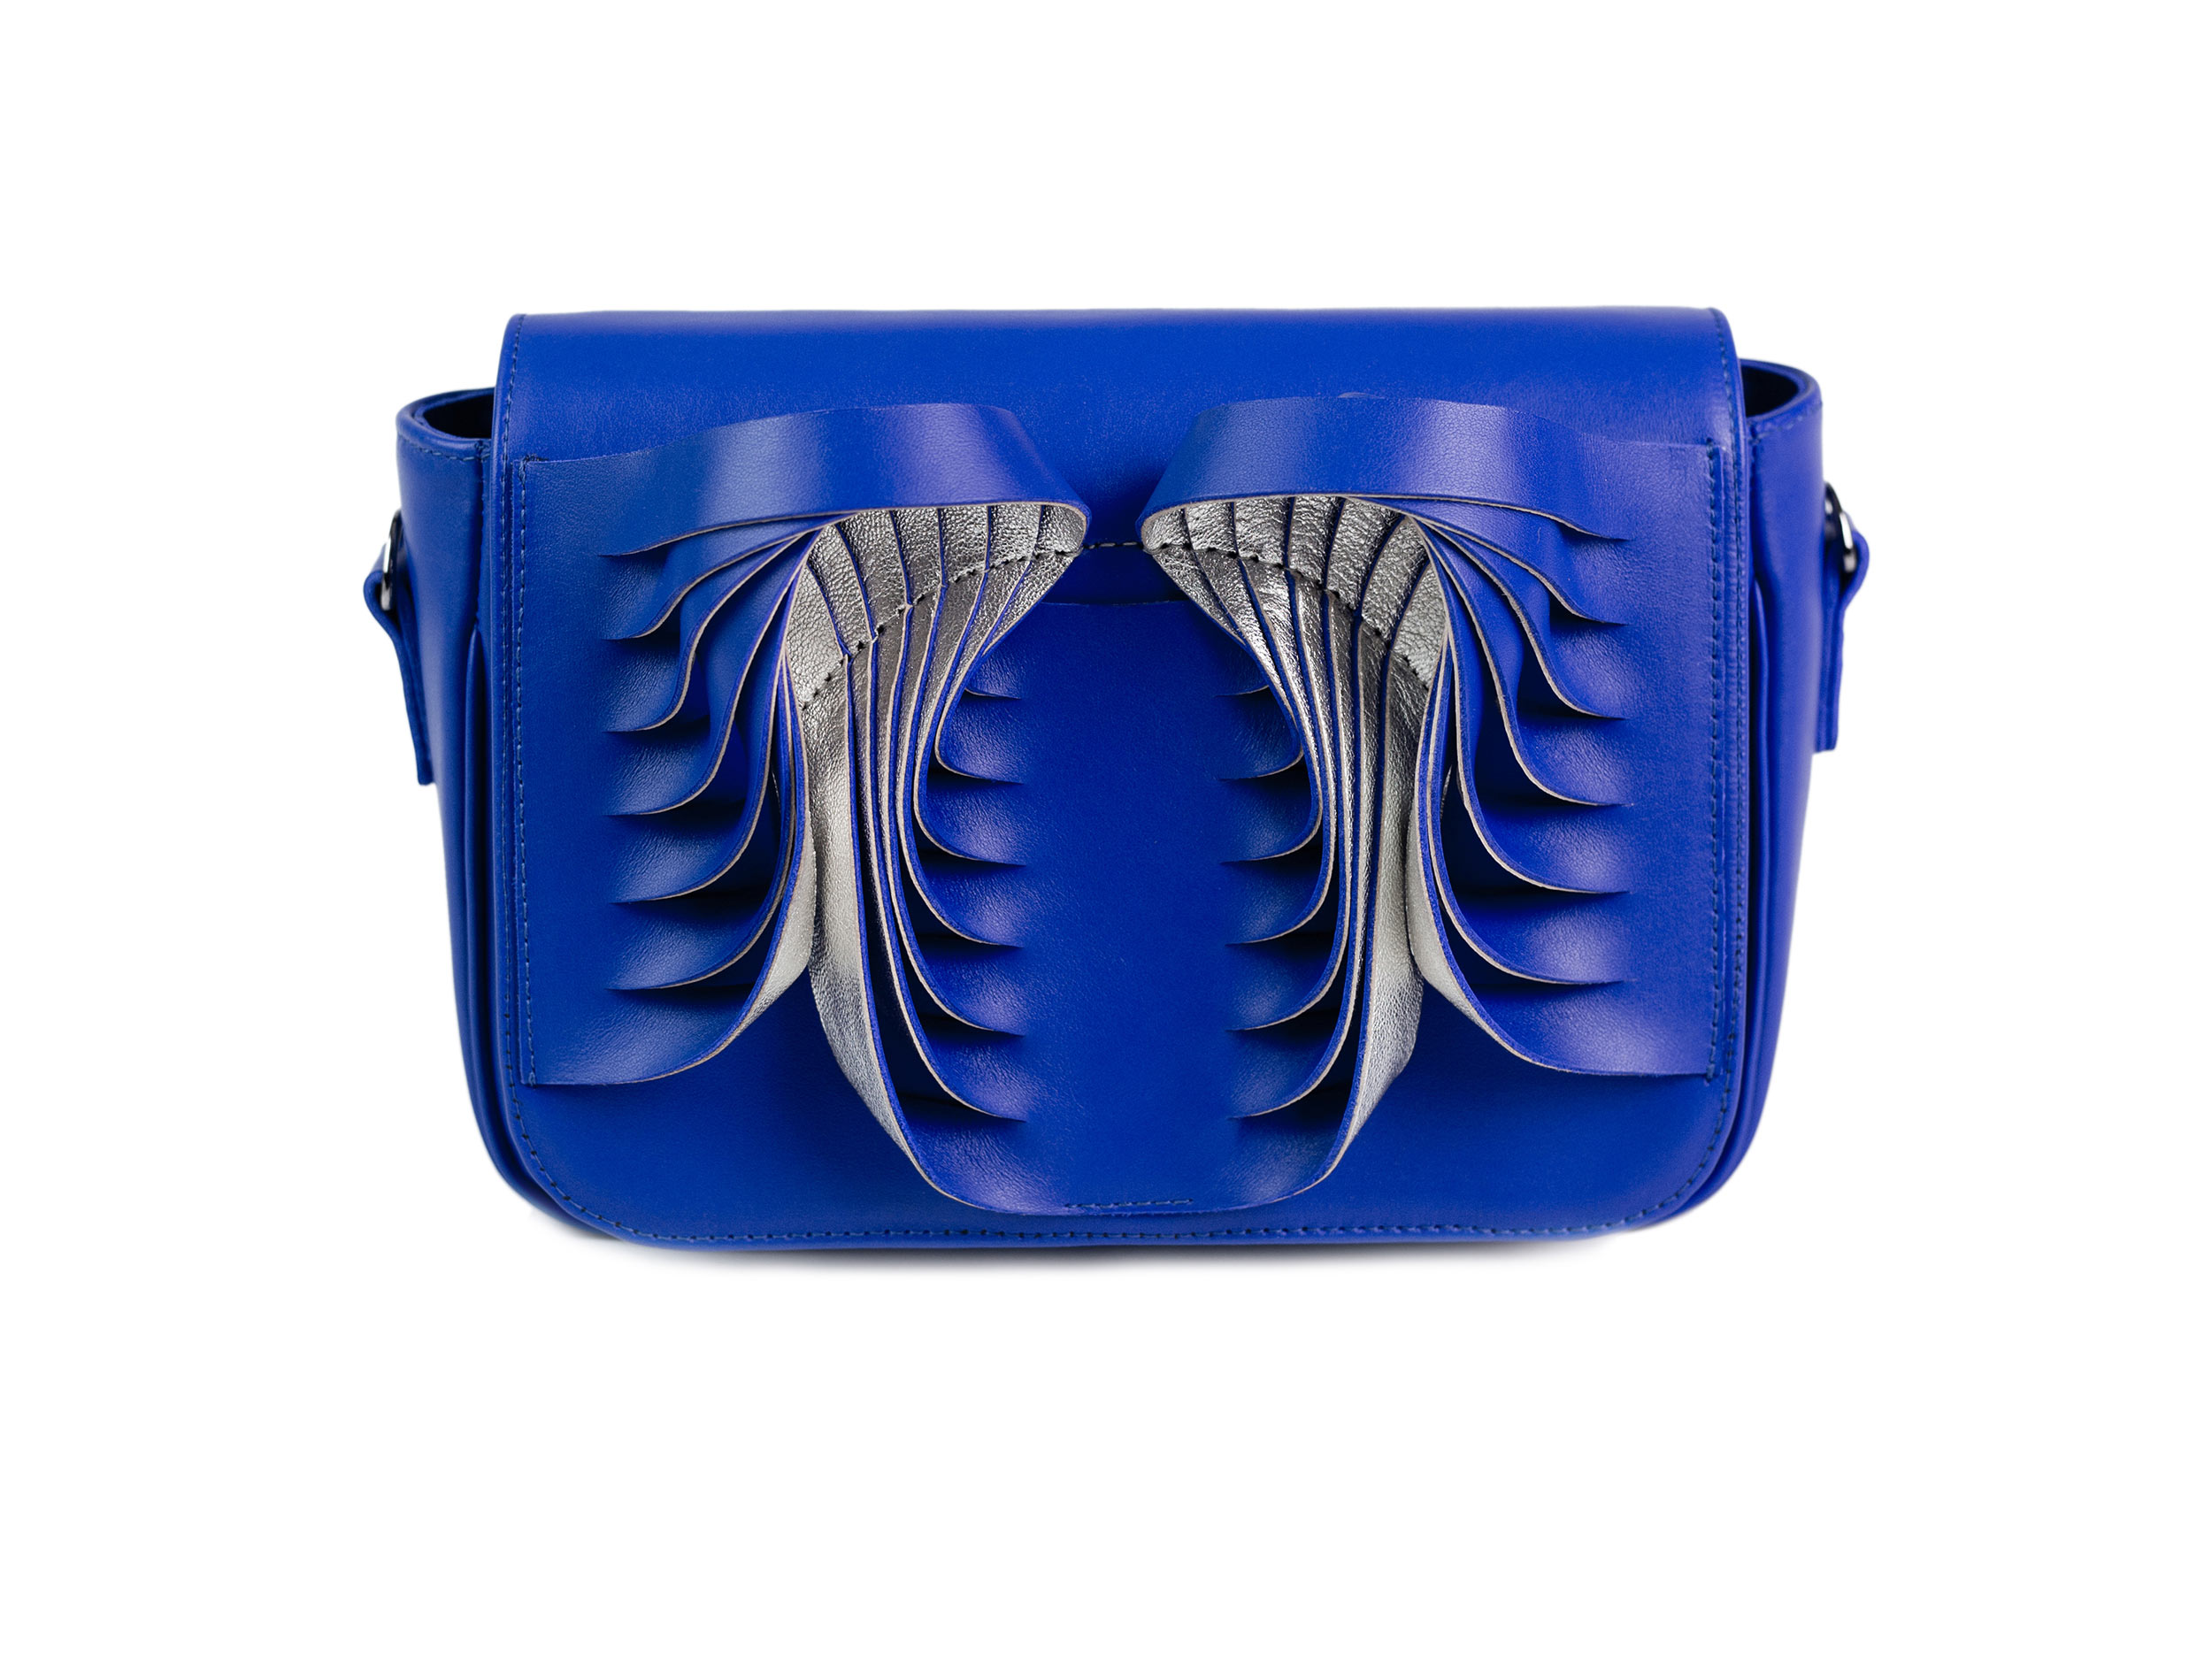 golovina-angel-wings-bag-navy-blue-and-silver-02